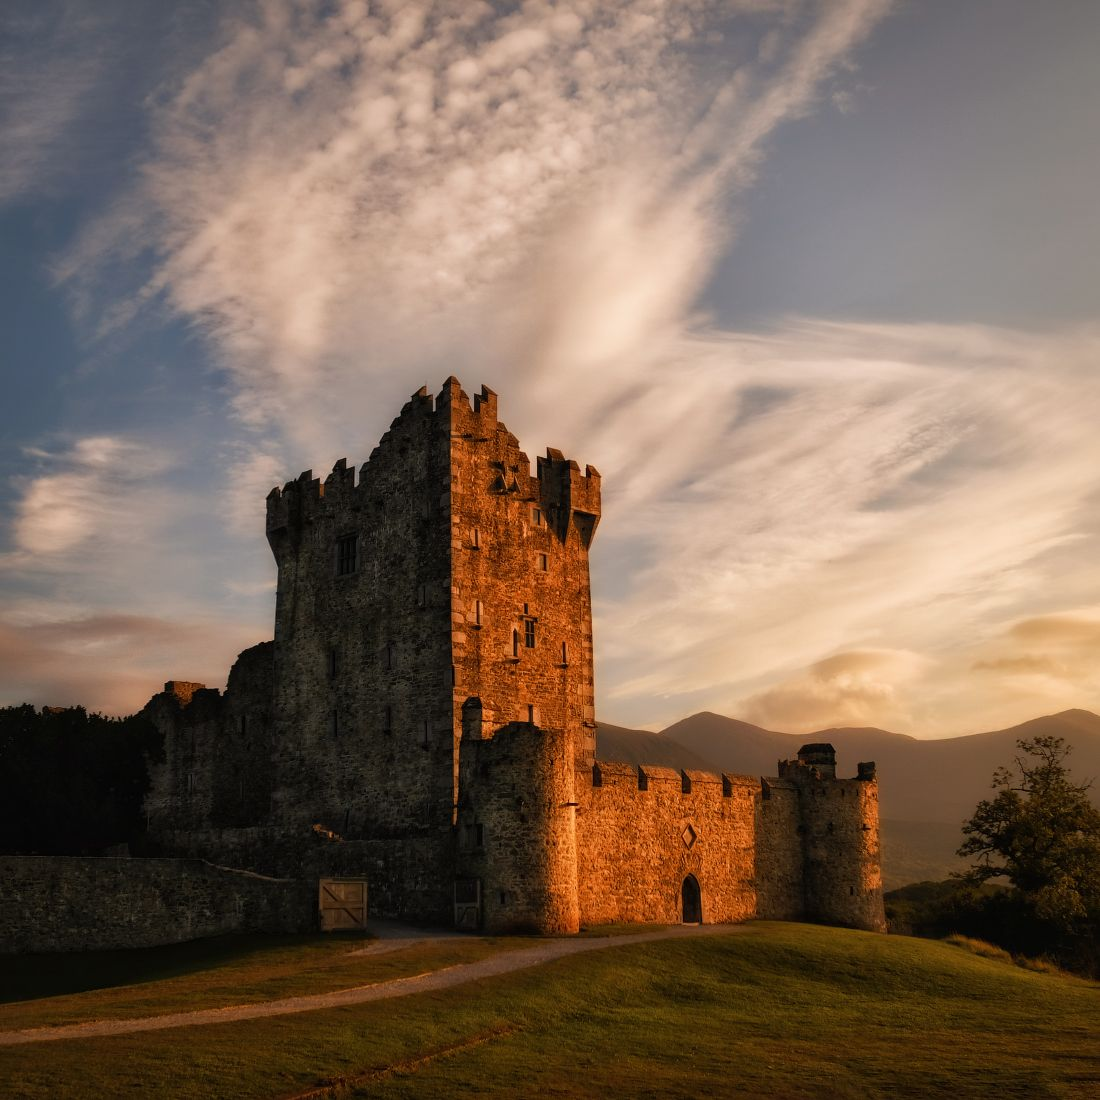 ...Ross castle... ireland kerry killarney ross castle sunset mountains landscape architechture old history ancientmfortress tower stone sky clouds cloudscape outdoors scenic scenery dramatic picturesque europe